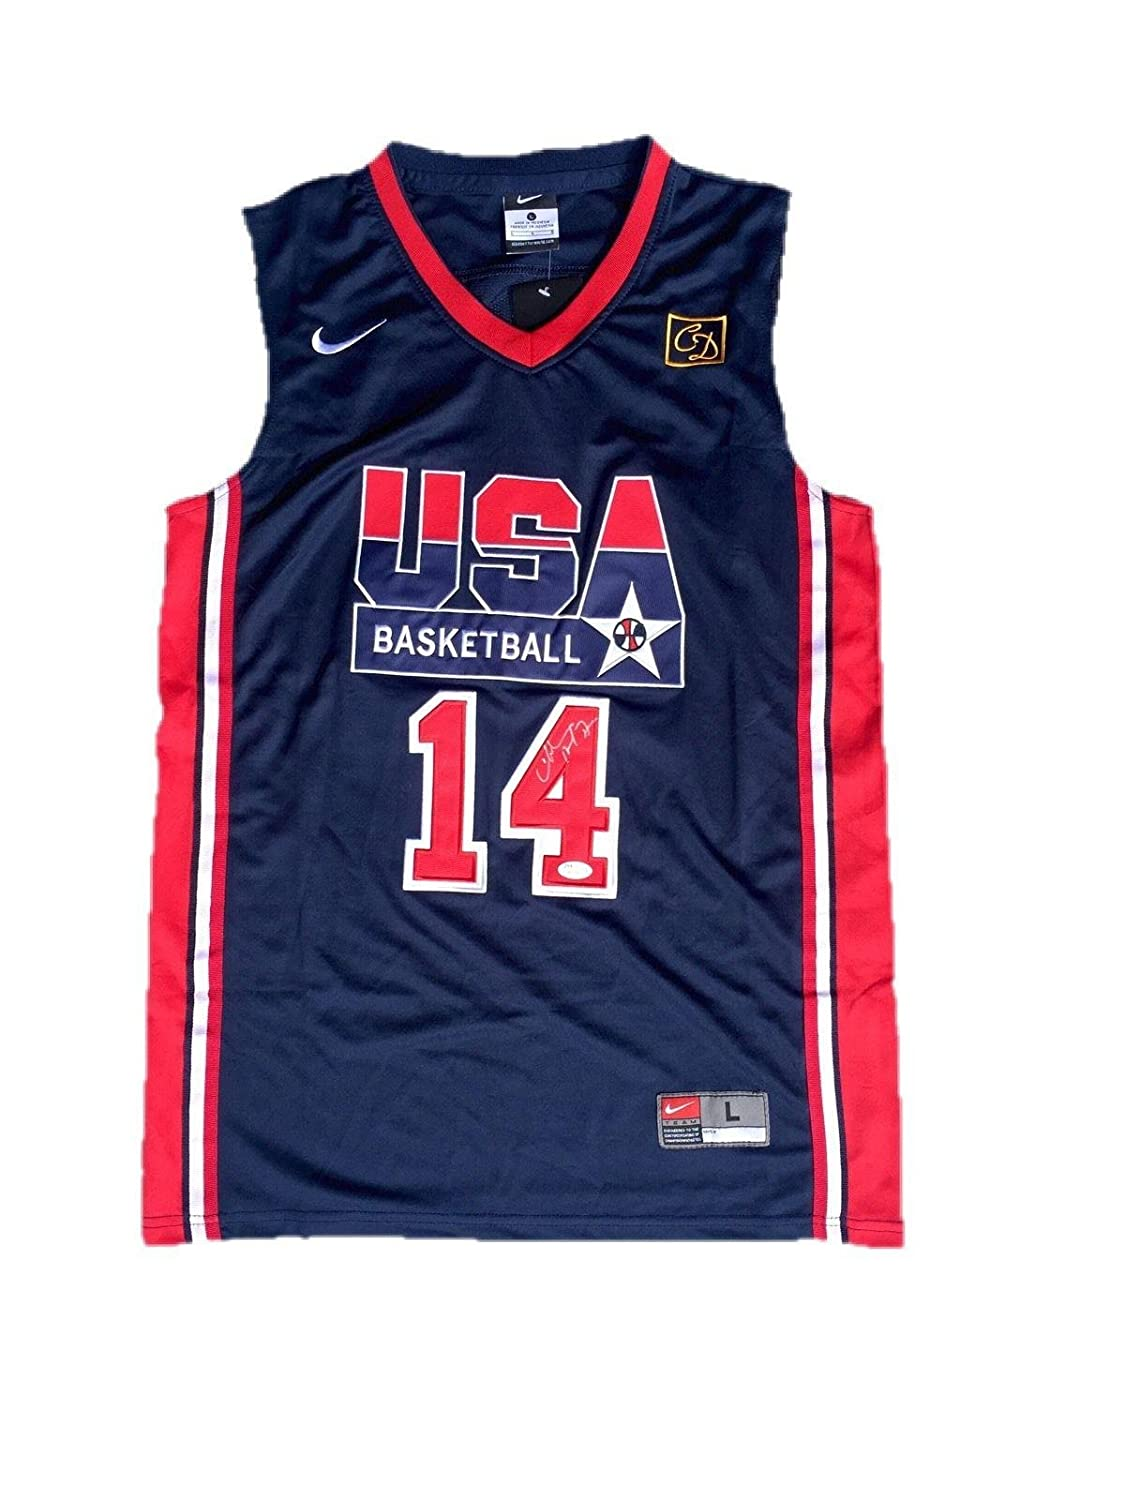 new product e2287 3b906 Autographed Charles Barkley Jersey - USA Olympics 1992 Dream ...